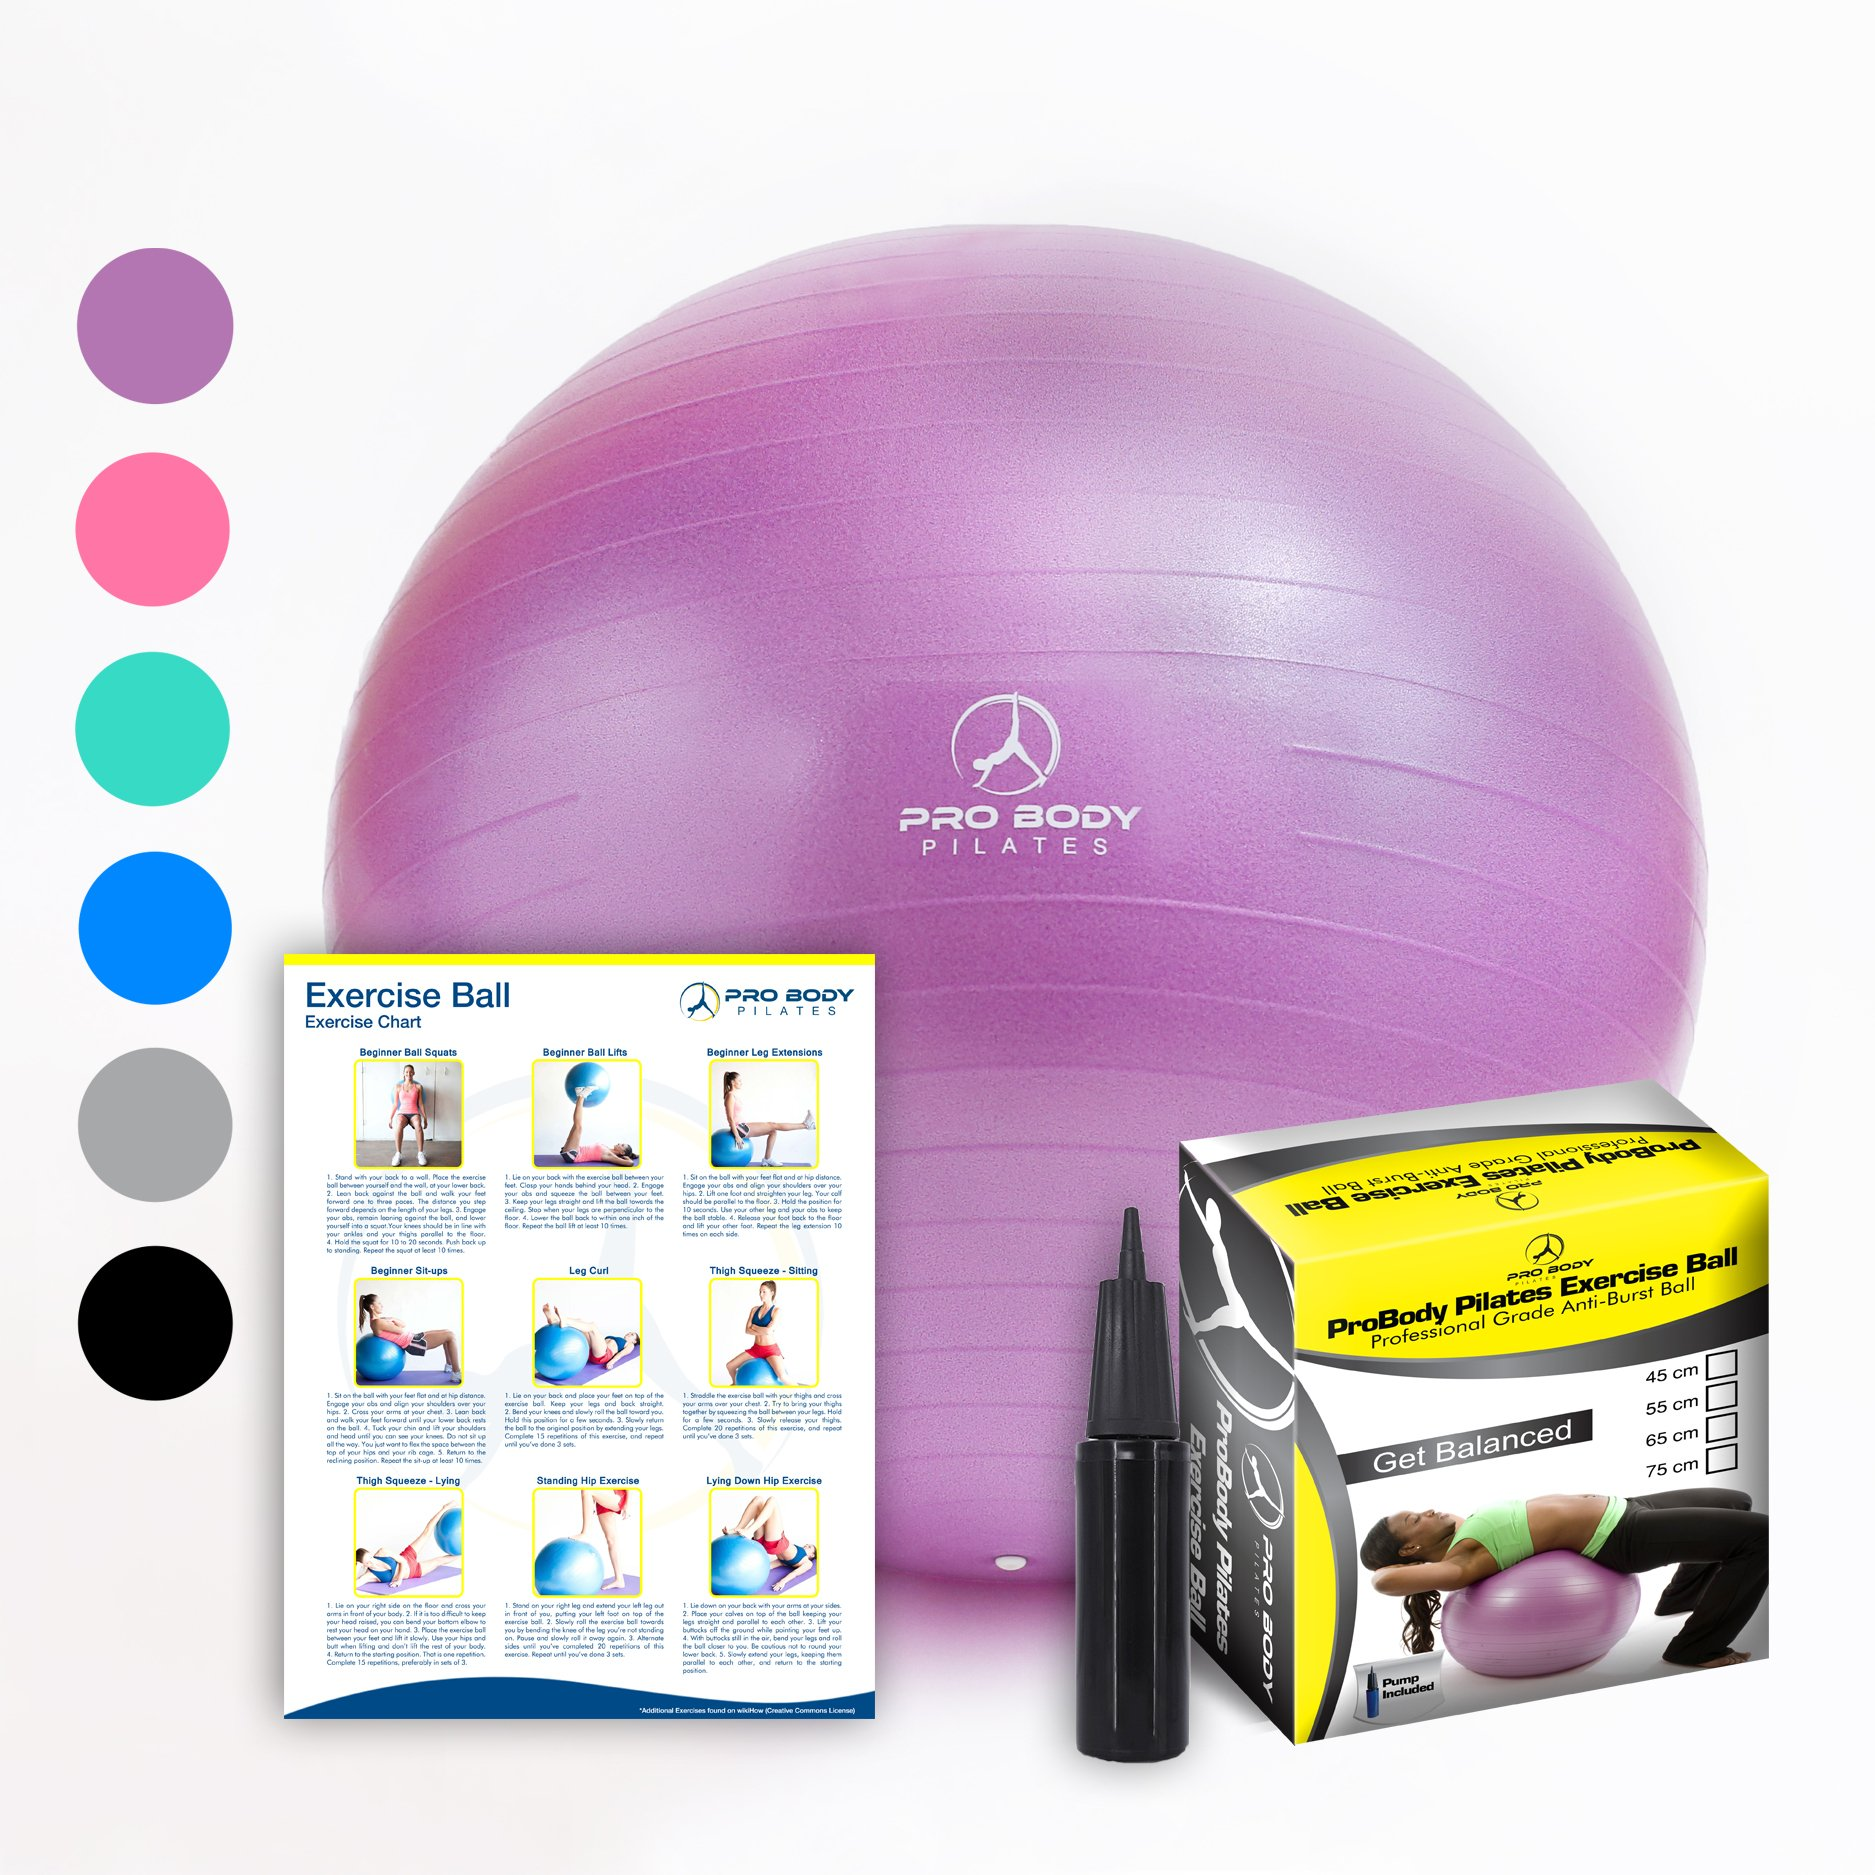 Exercise Ball - Professional Grade Anti-Burst Fitness, Balance Ball for Pilates, Yoga, Birthing, Stability Gym Workout Training and Physical Therapy (Purple, 55 cm) by ProBody Pilates